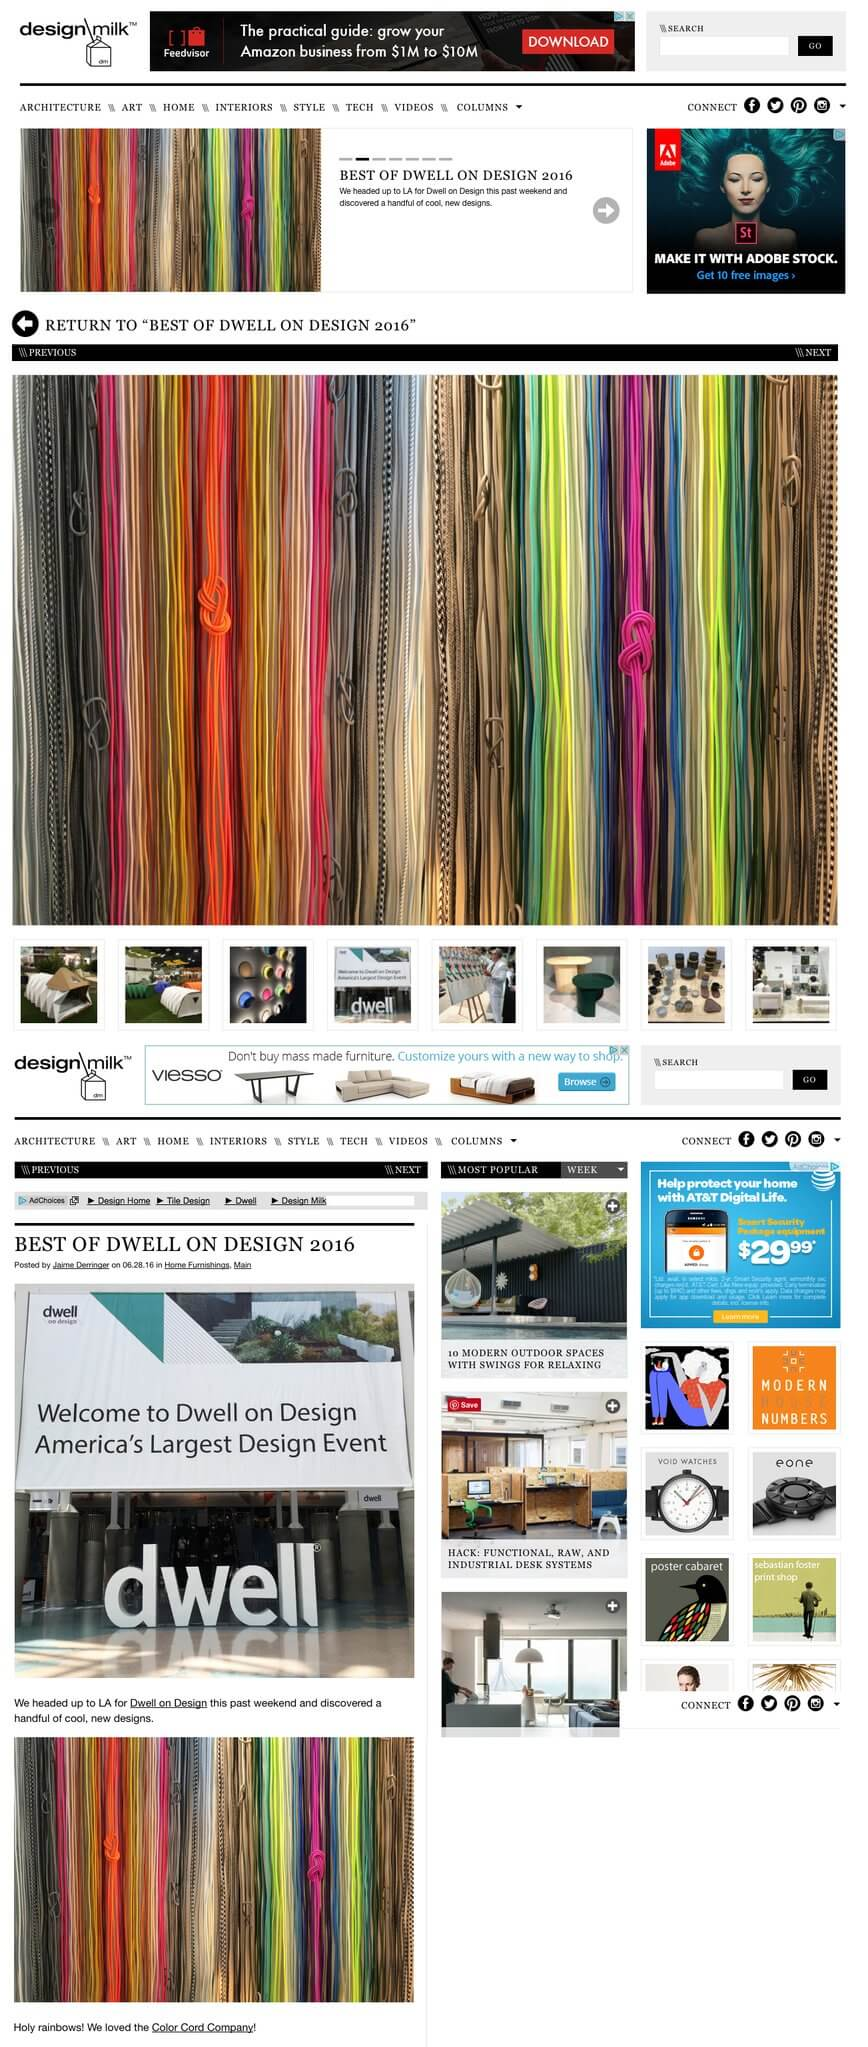 Design Milk screenshot with colored electric cords